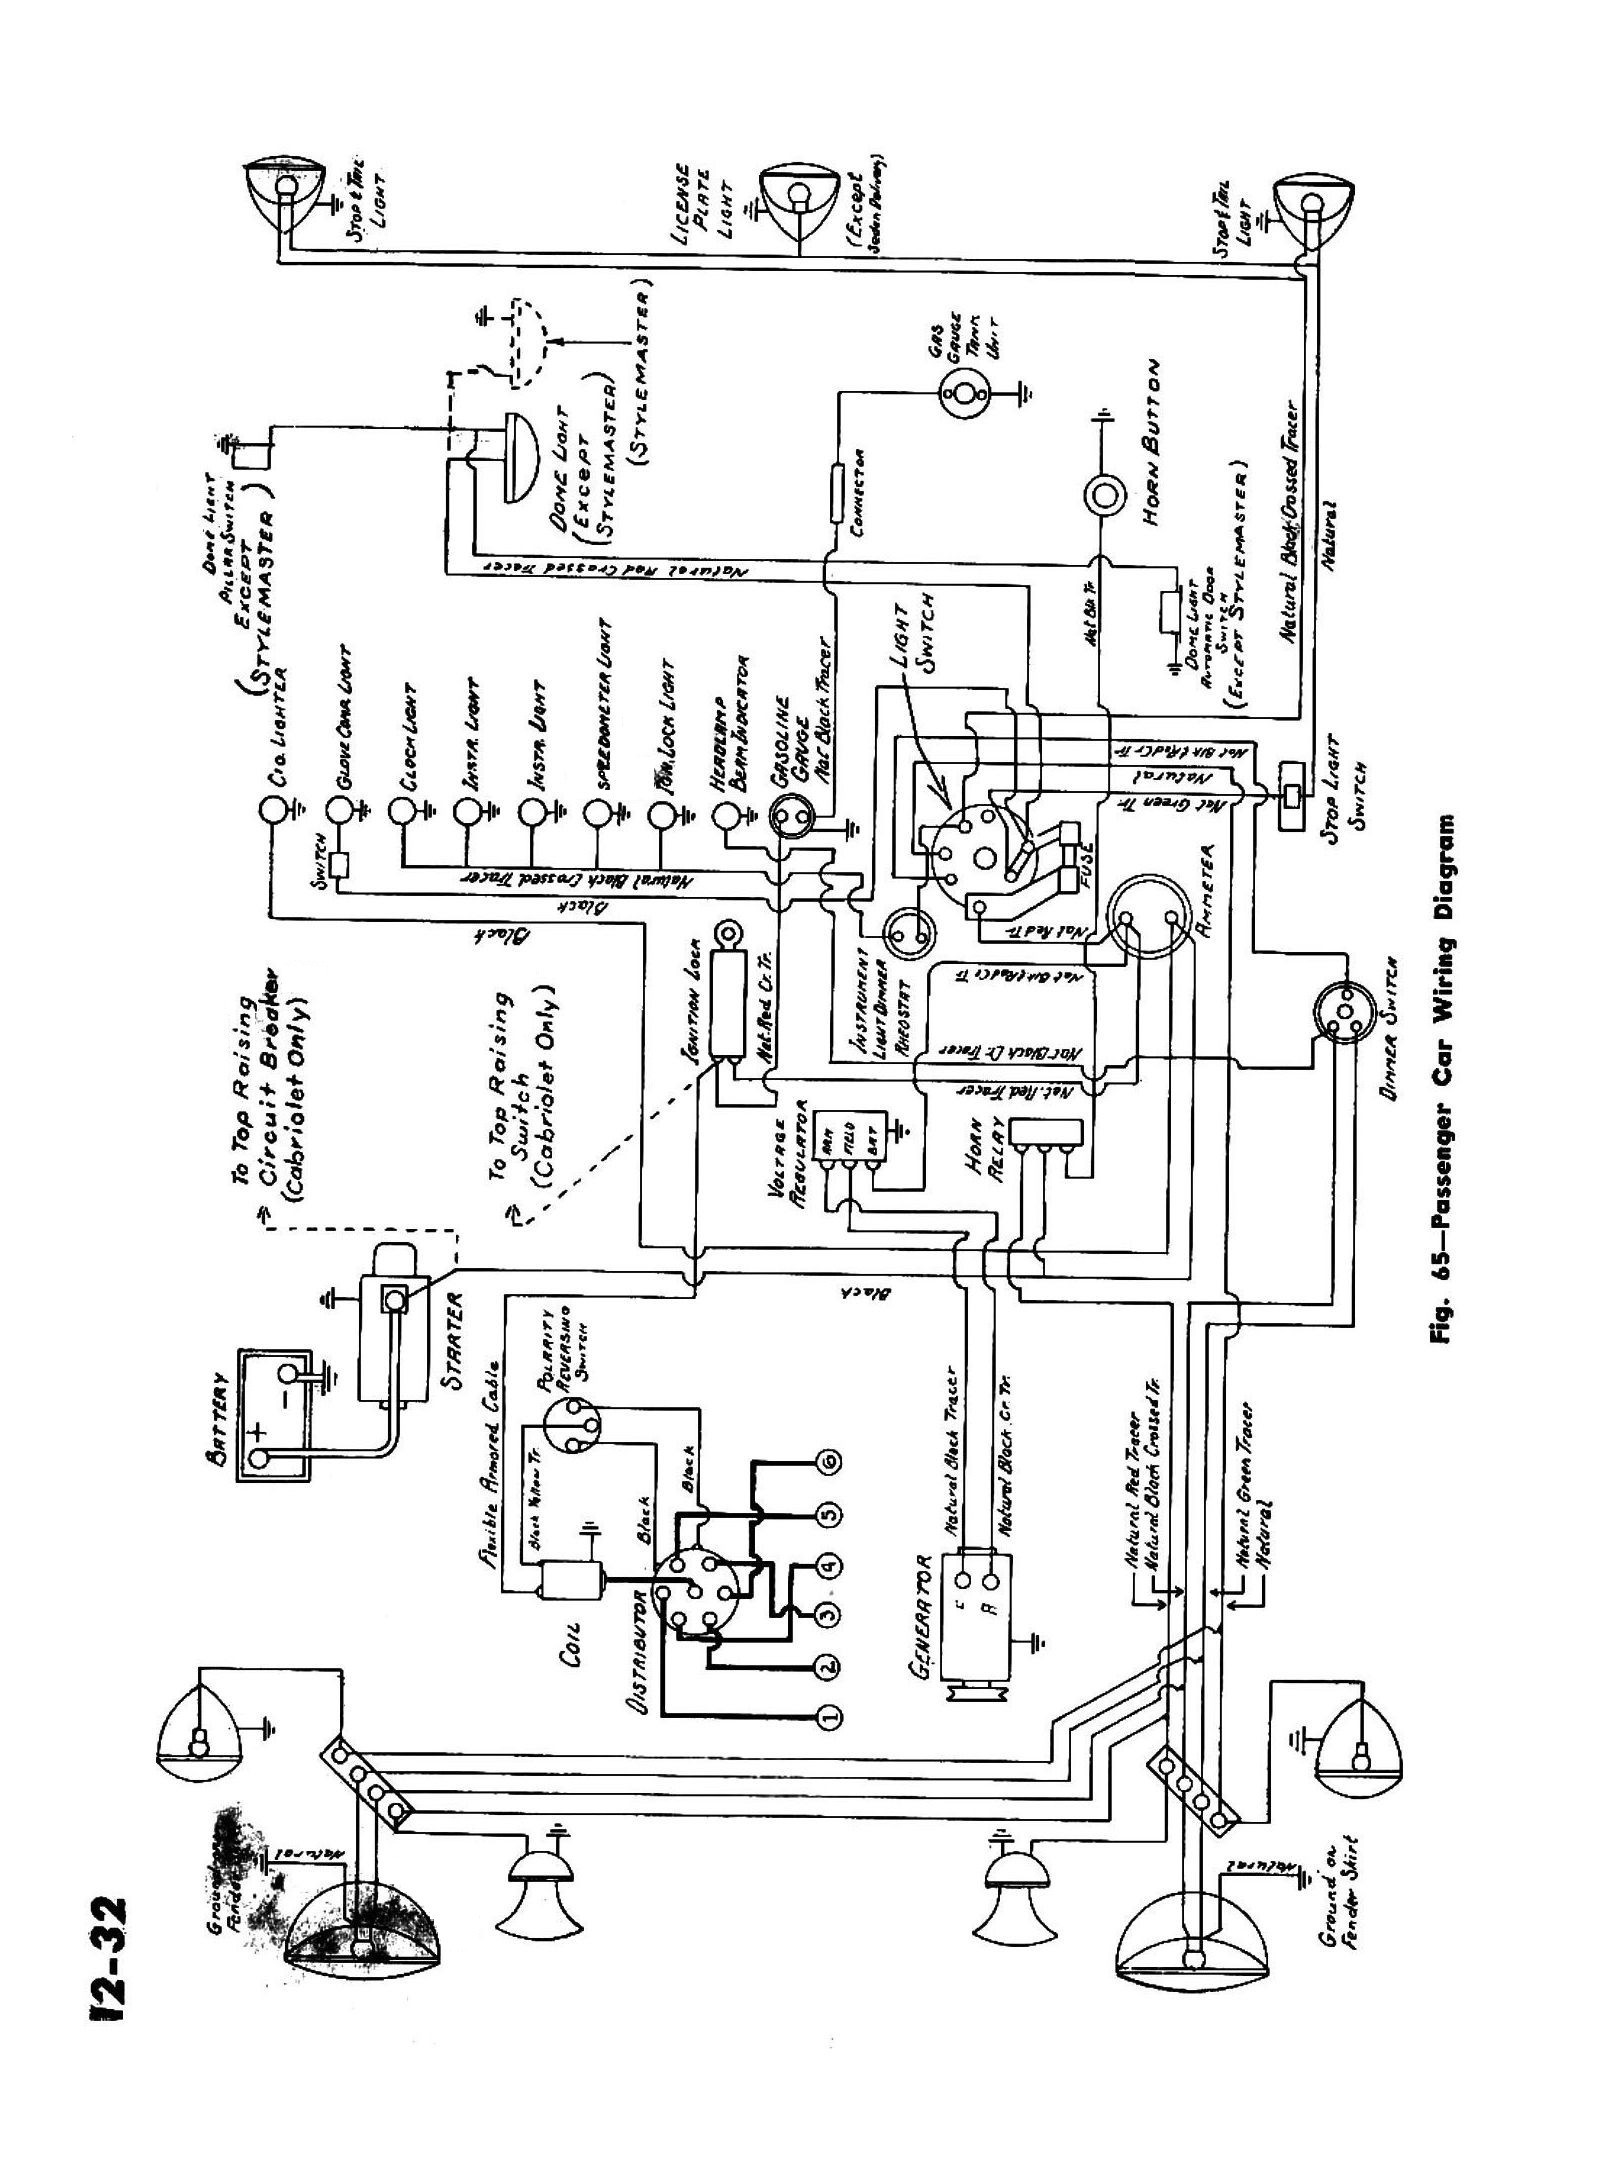 Car Wiring Diagrams Explained Maxon Wire Diagram My Chevy Of